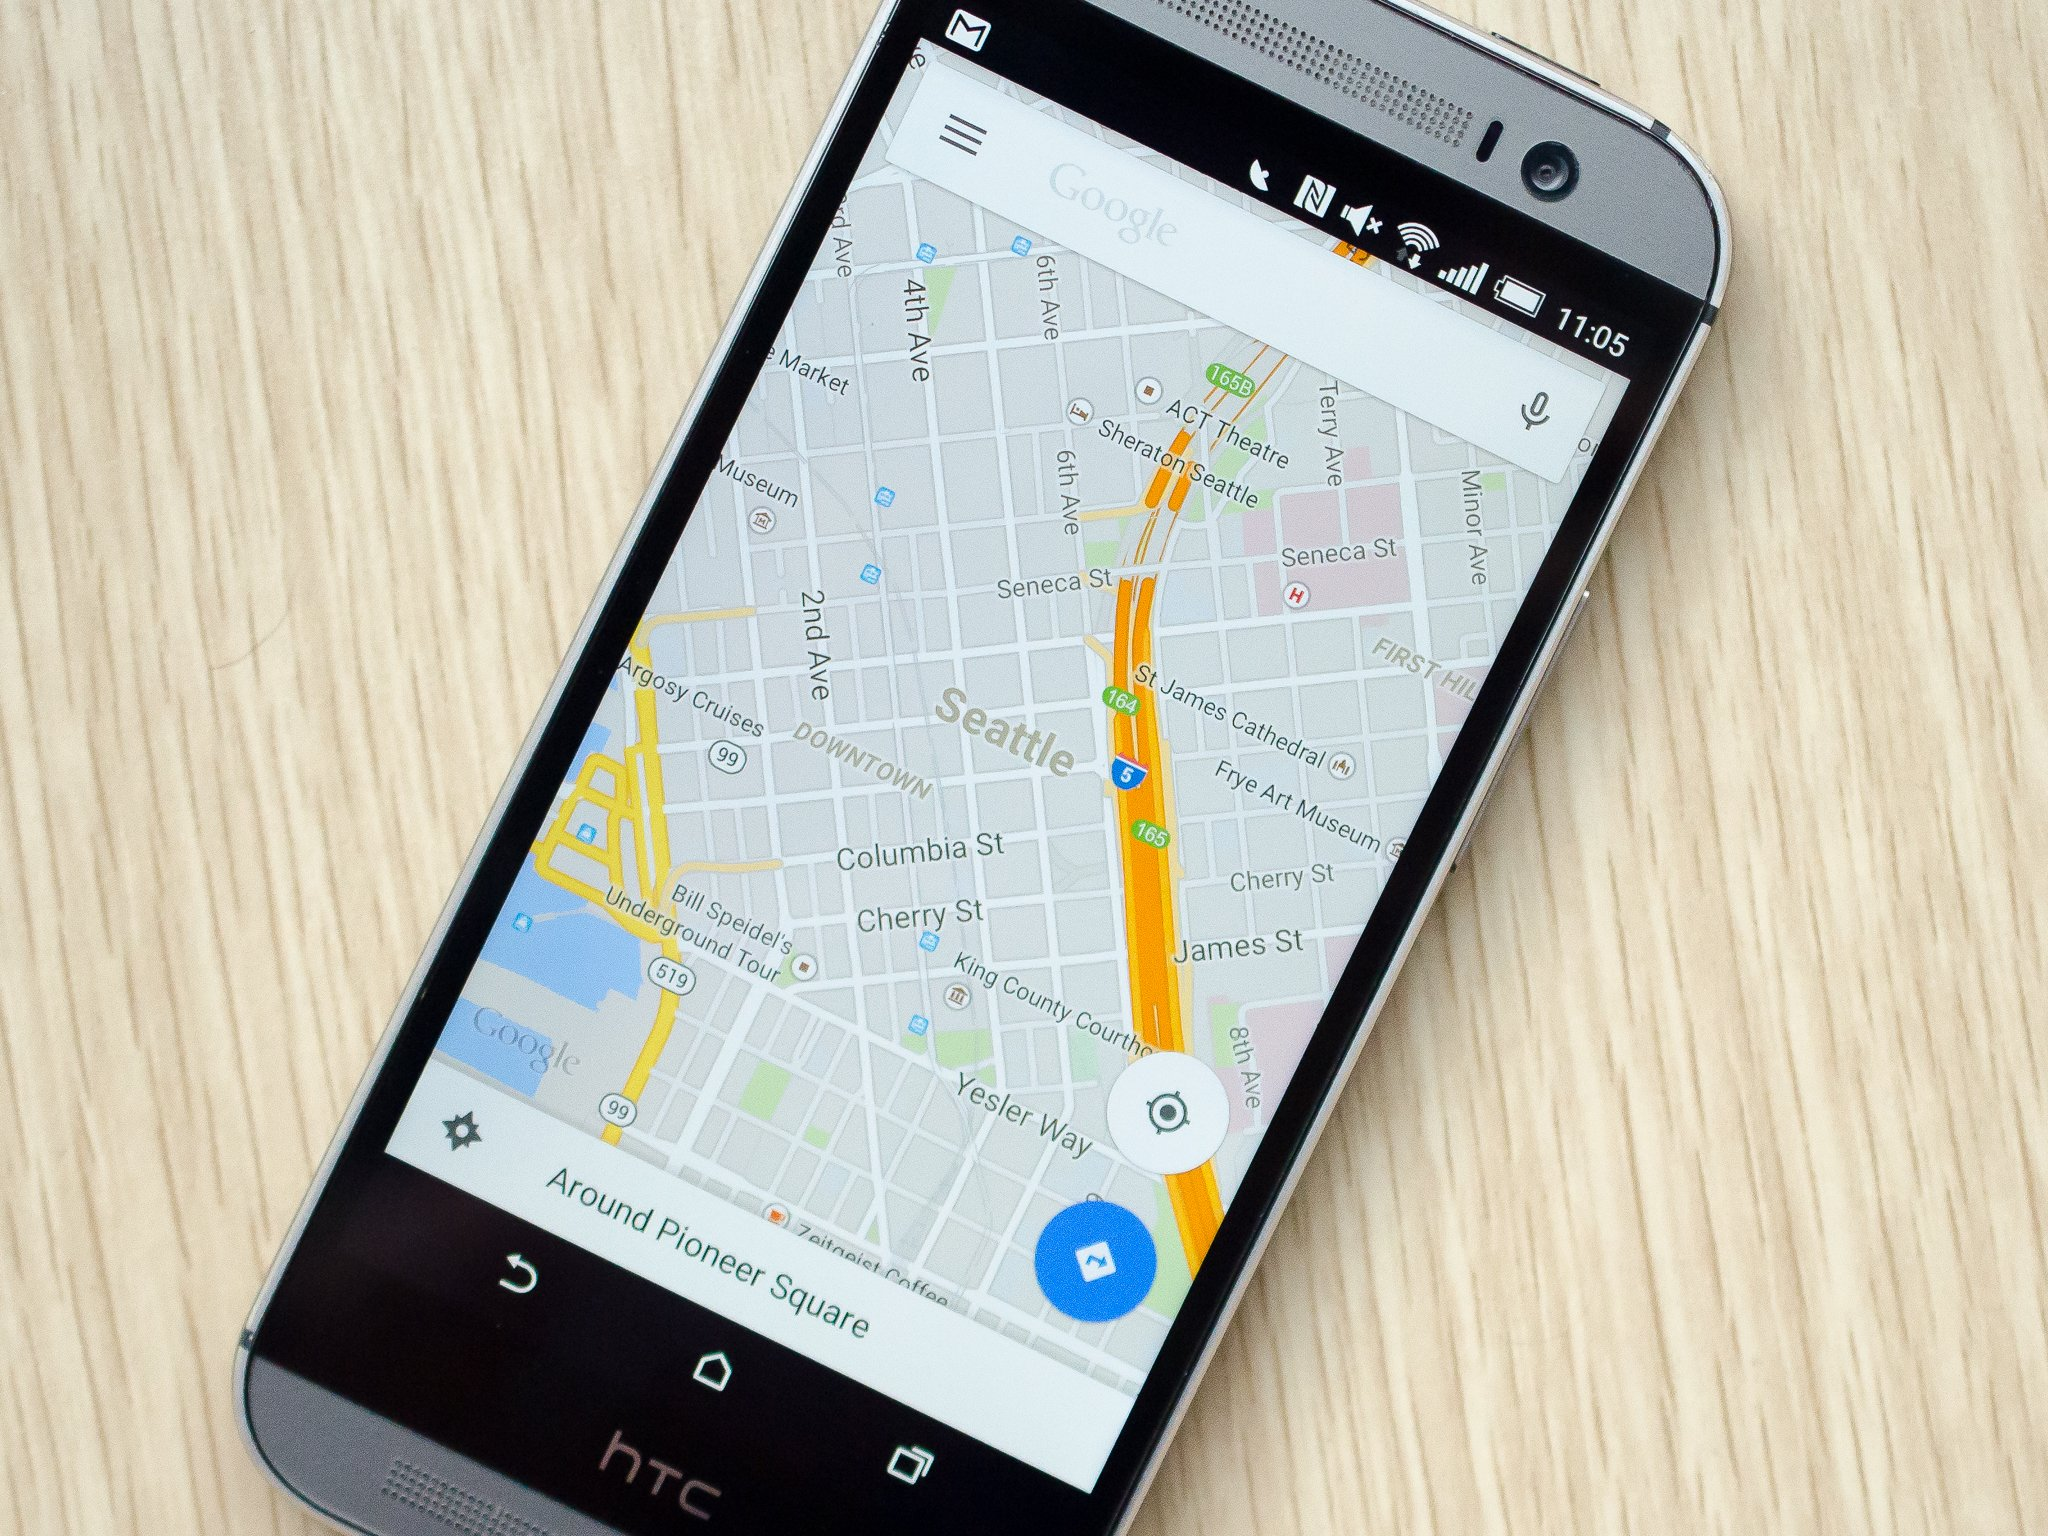 Car Parking Wallpaper The Basics Of Google Maps For Android Android Central